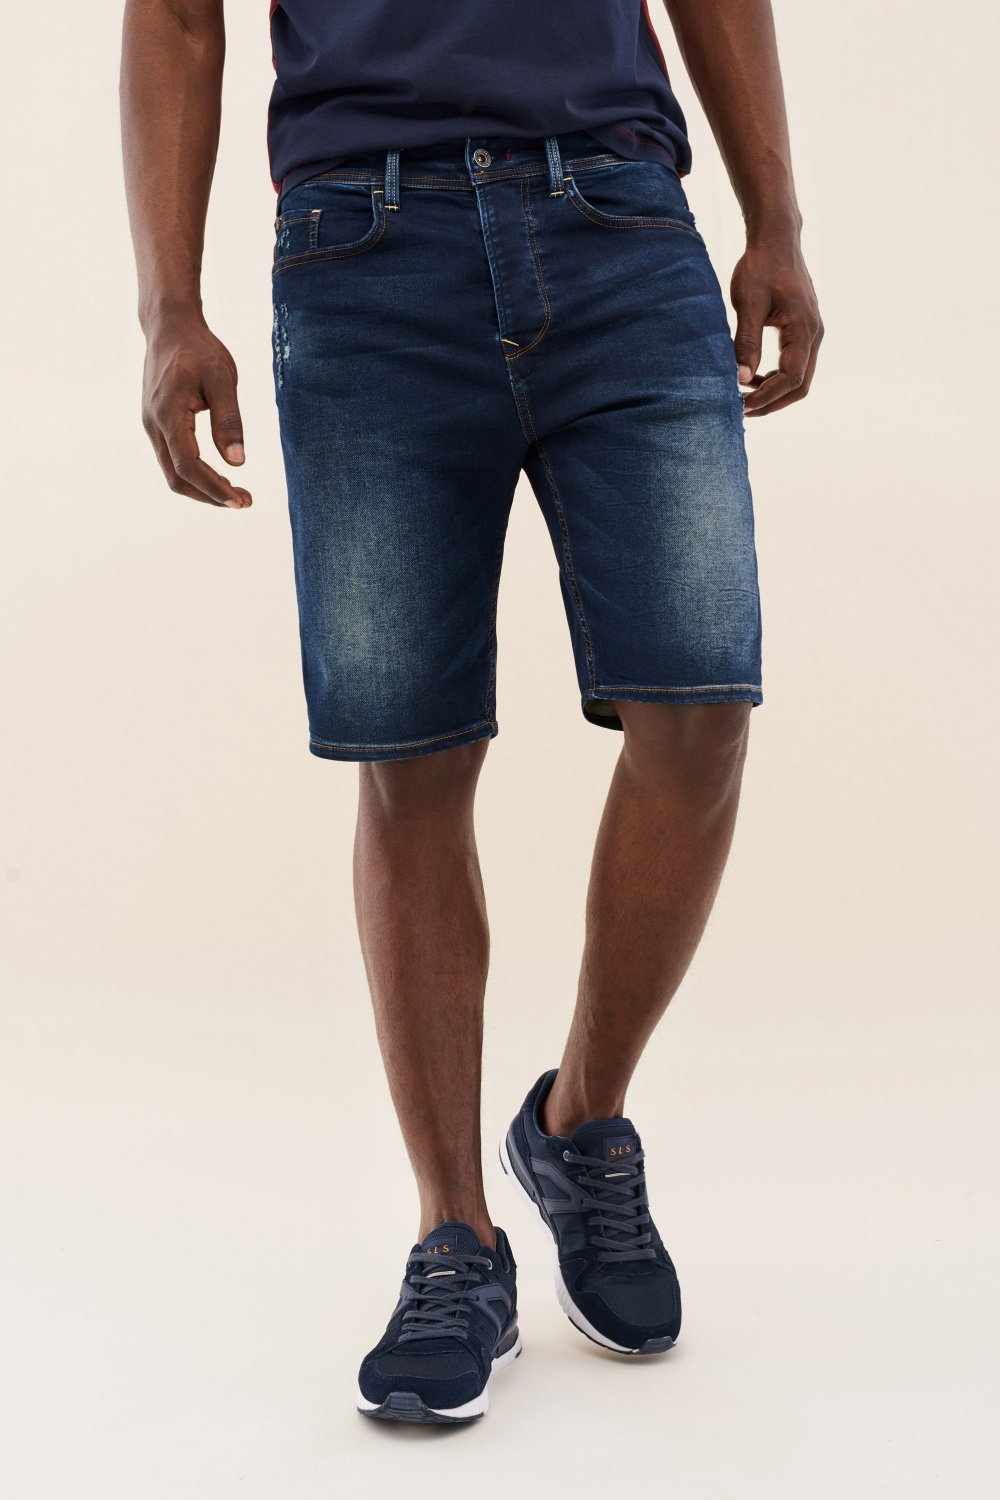 Shorts Loose Jogger, Stoff in Overdye - Salsa